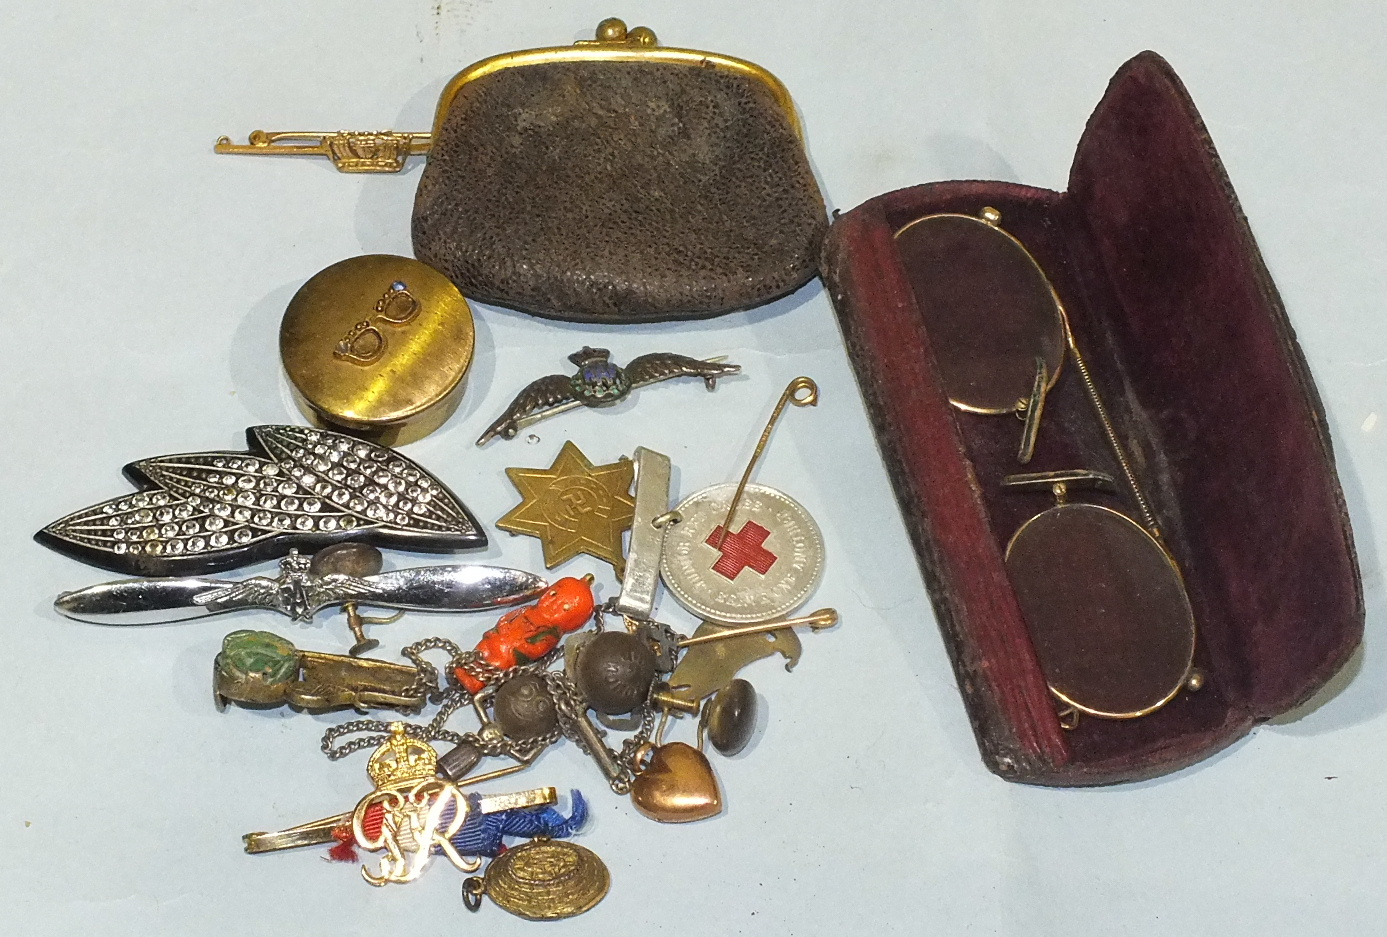 Lot 208 - A 9ct gold naval coronet brooch with metal pin, a pair of pince nez and other items.